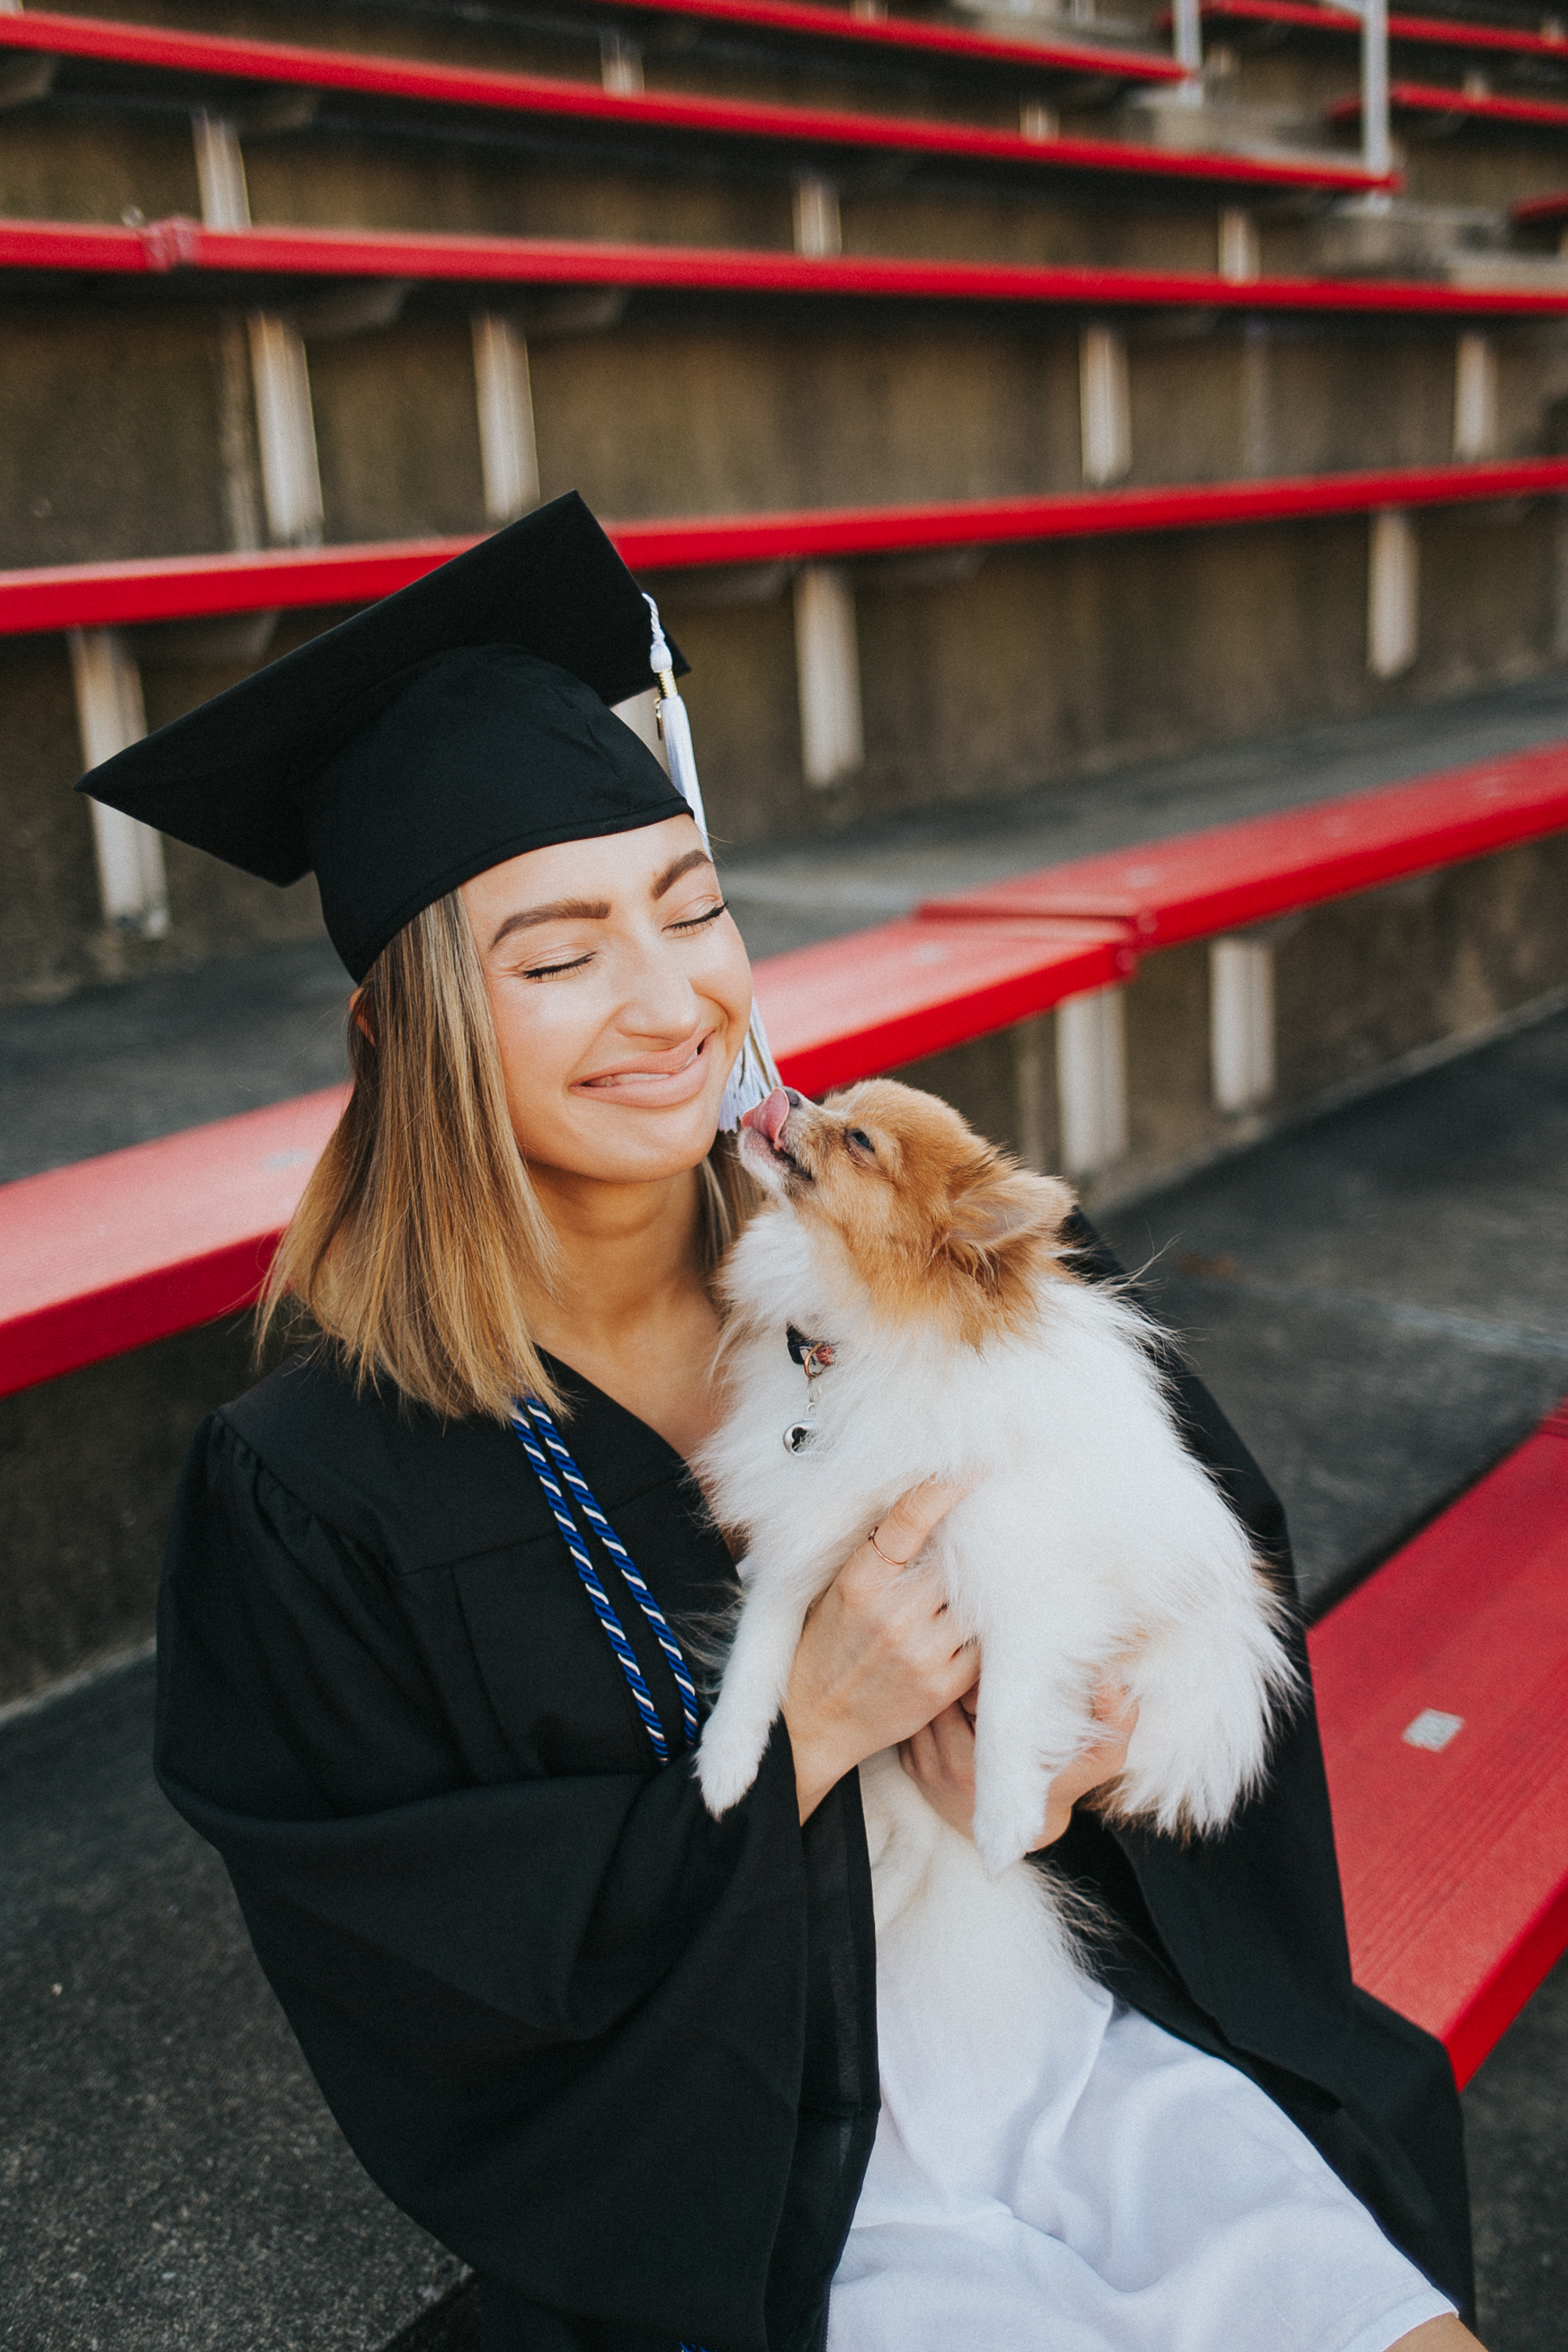 University of Cincinnati Class of 2019 Senior Girl Photography | Senior Photography | Girl Senior | UC | University of Cincinnati Senior | UC Seniors | Cap and Gown | Class of 2019 | Grads | Congrads | Graduation Photo | Cap and Gown | Tasse